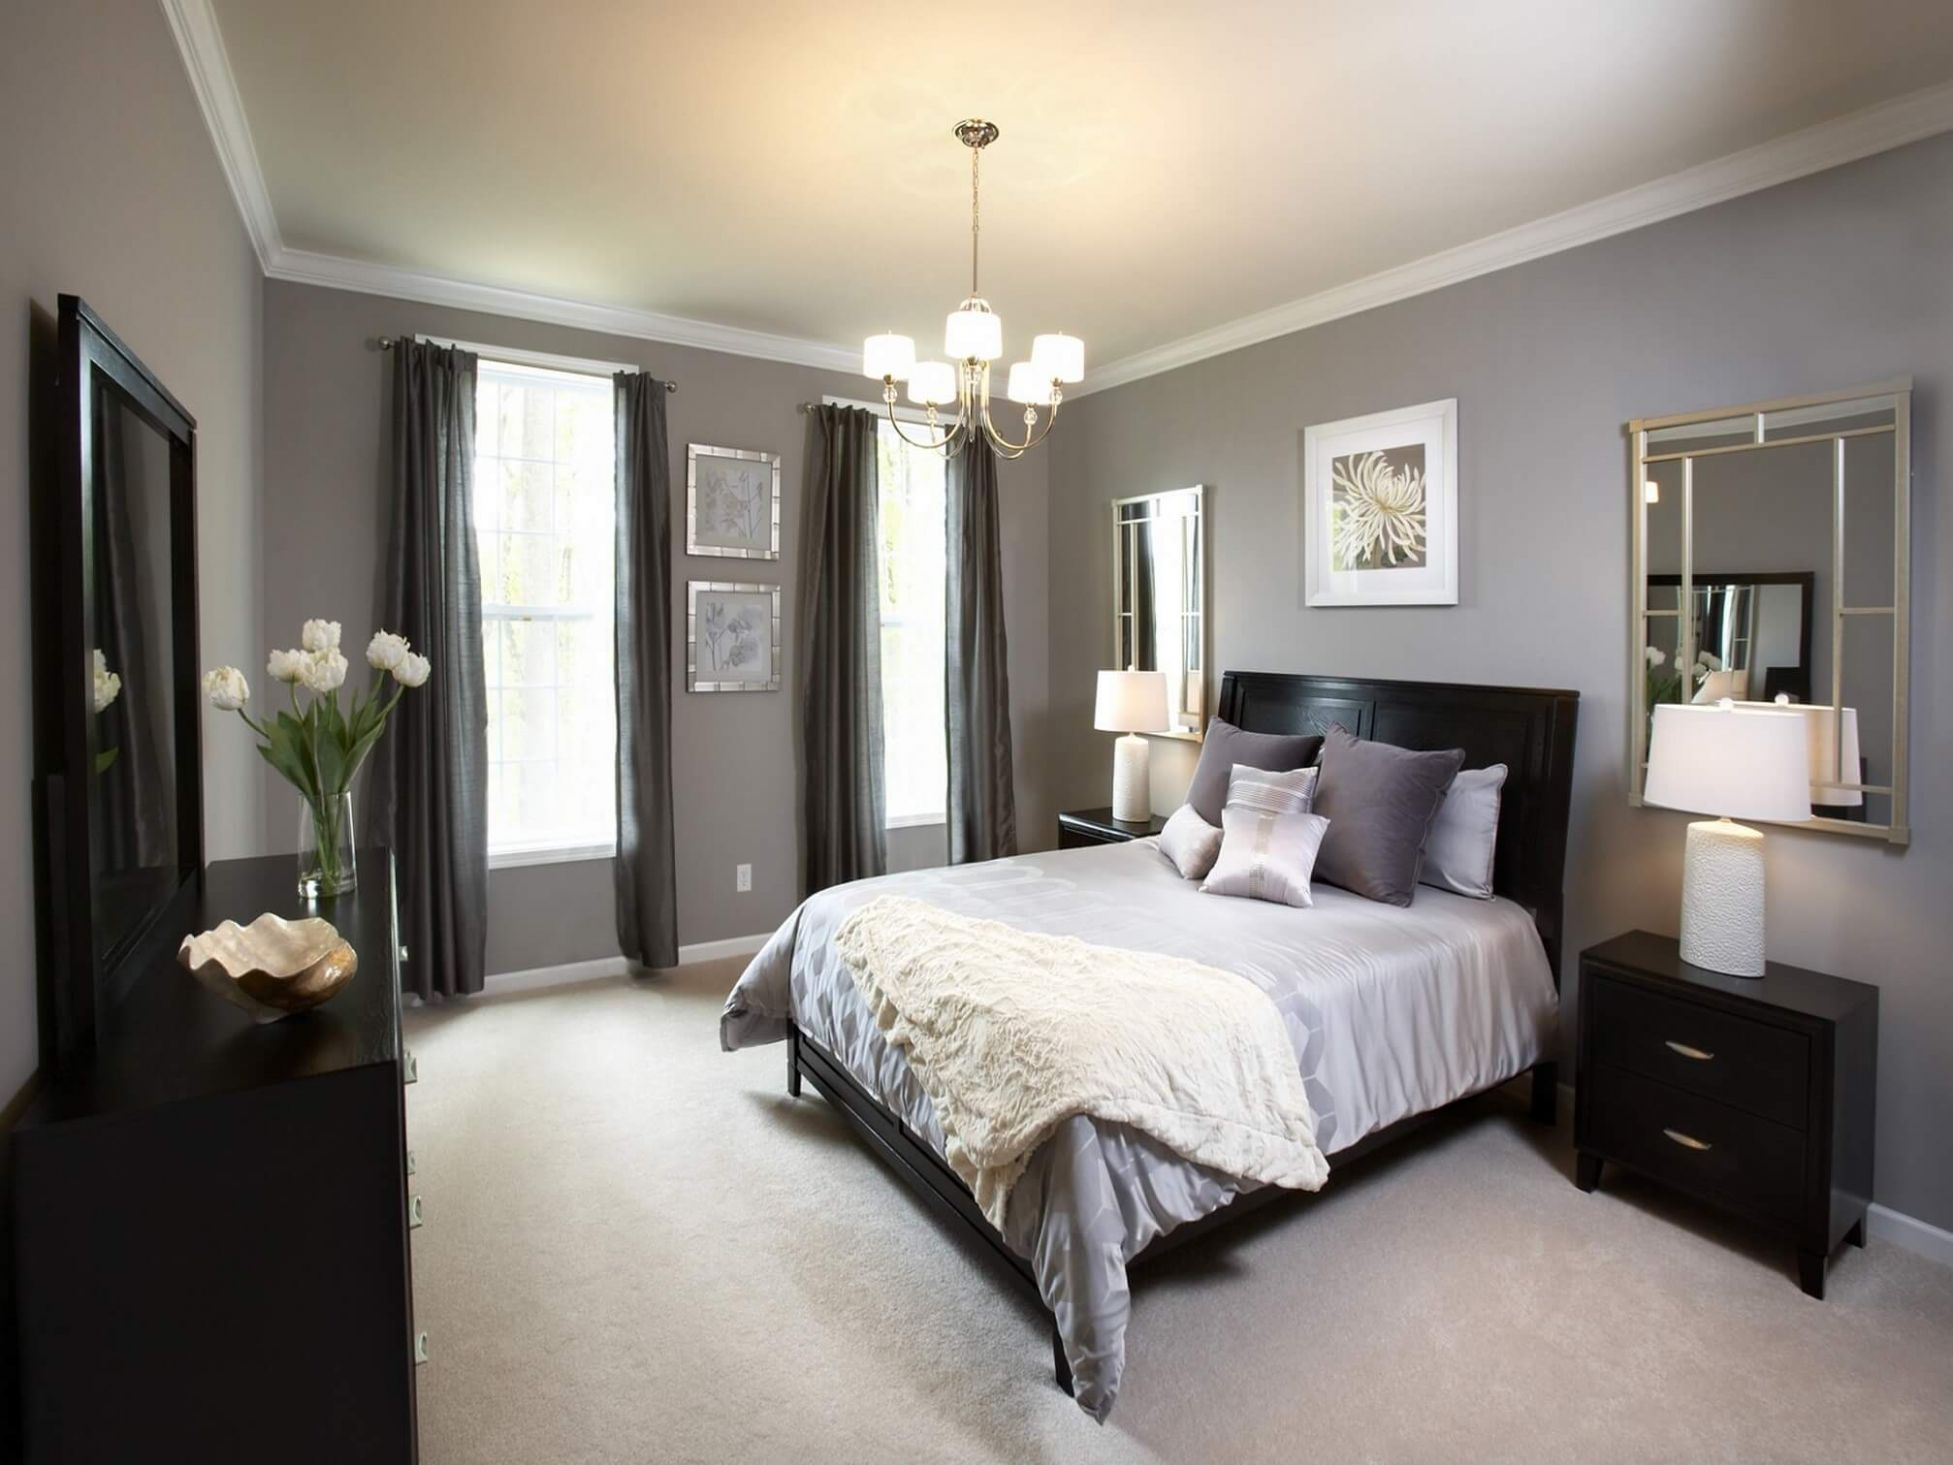 10 Best Grey Bedroom Ideas and Designs for 10 - bedroom ideas using grey